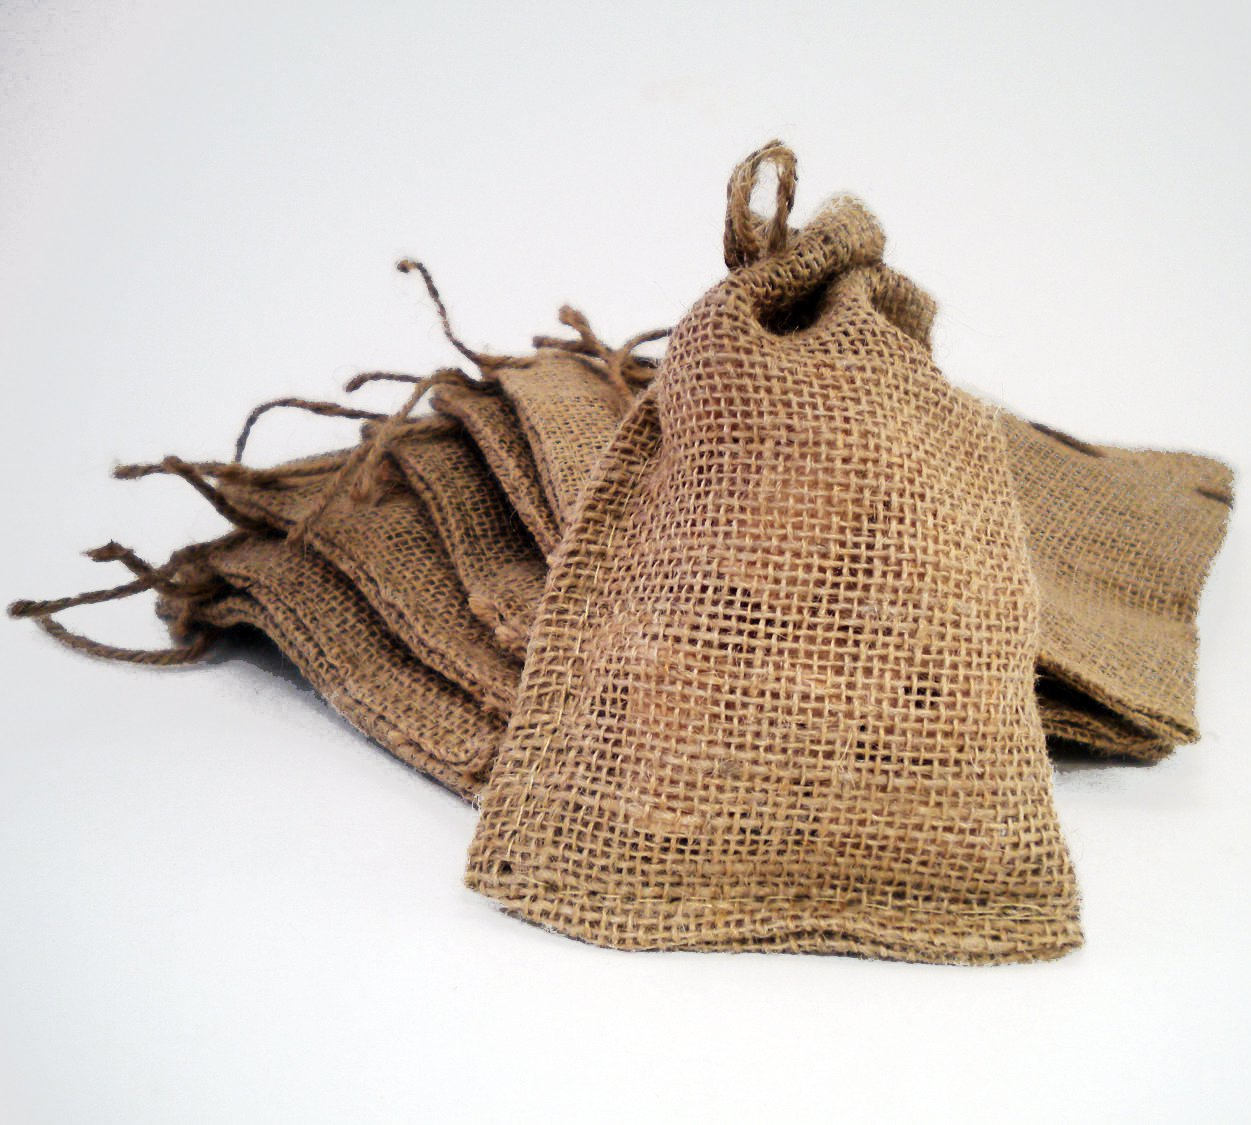 "5 Burlap Sacks With Jute Drawstring 4x6"" for Seeds or Gifts"